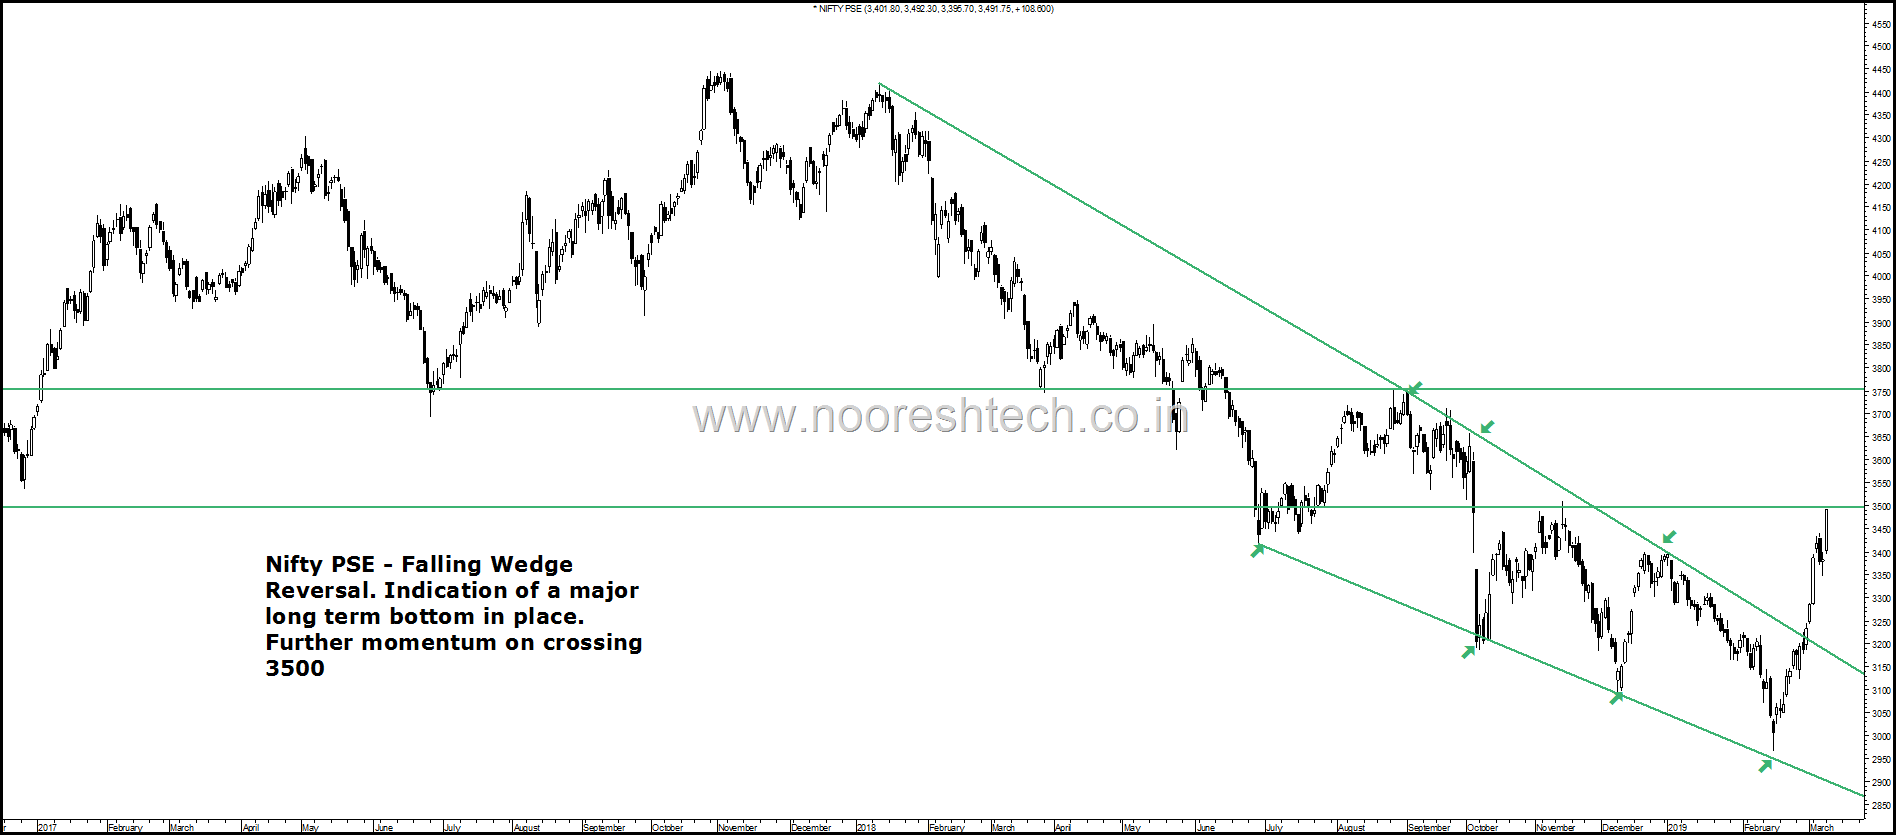 Nifty PSE trend change